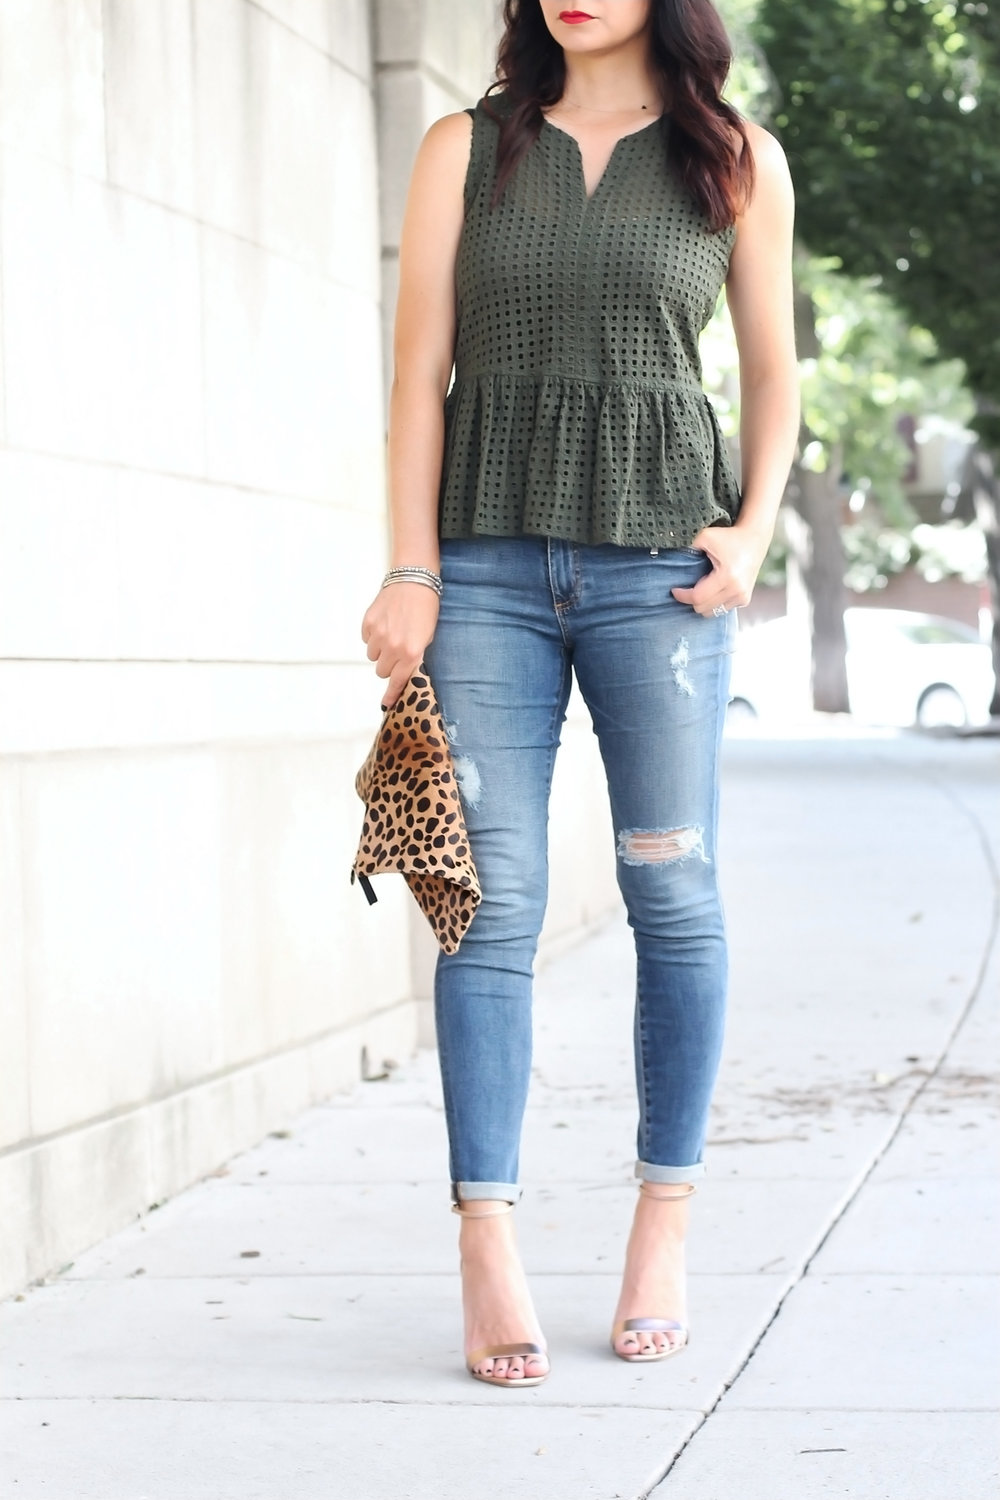 Olive Green Peplum Eyelet Top